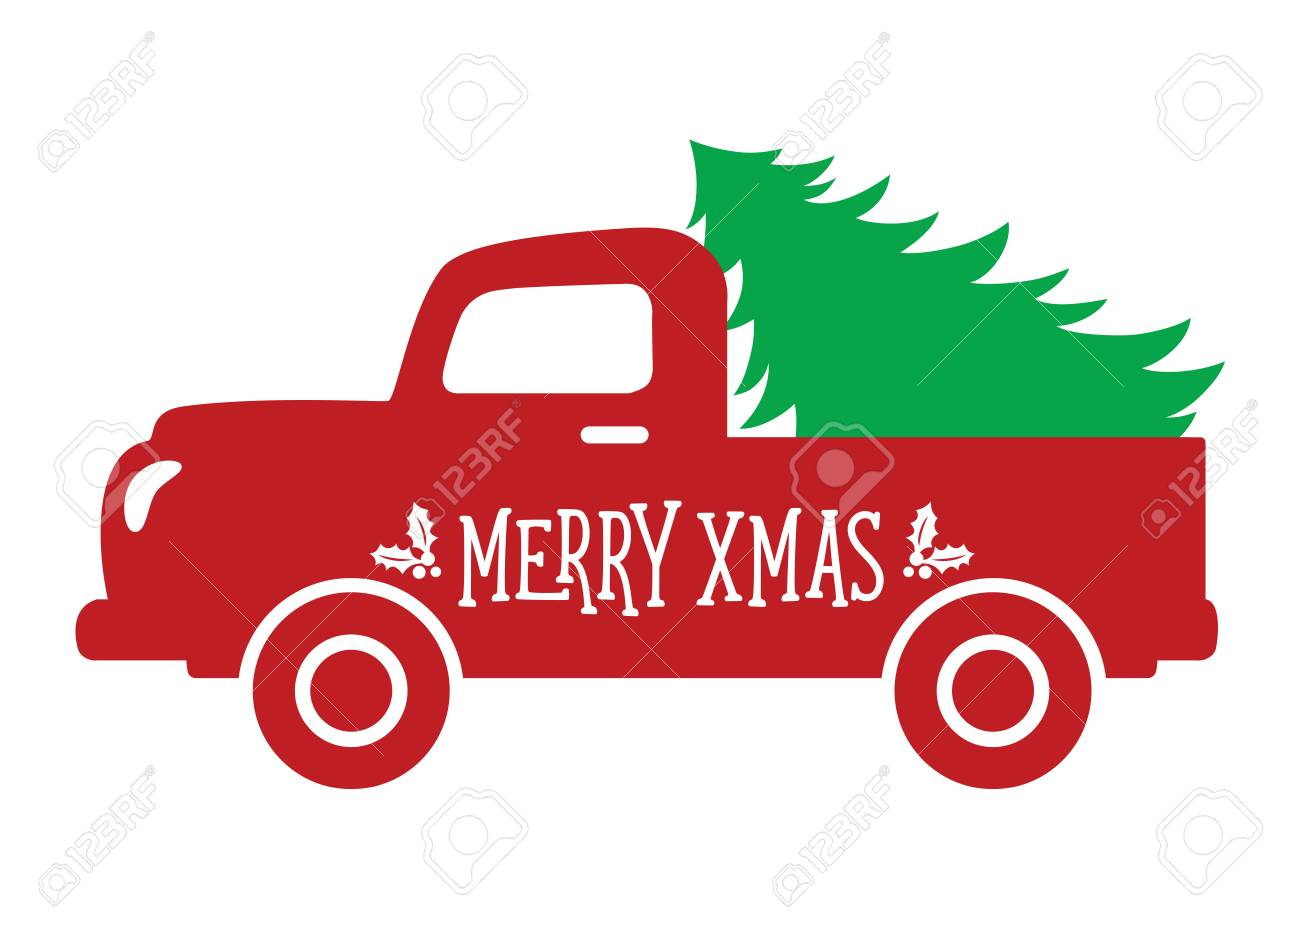 Old Truck With Christmas Tree.Vector Illustration Of An Old Vintage Truck Carrying A Christmas